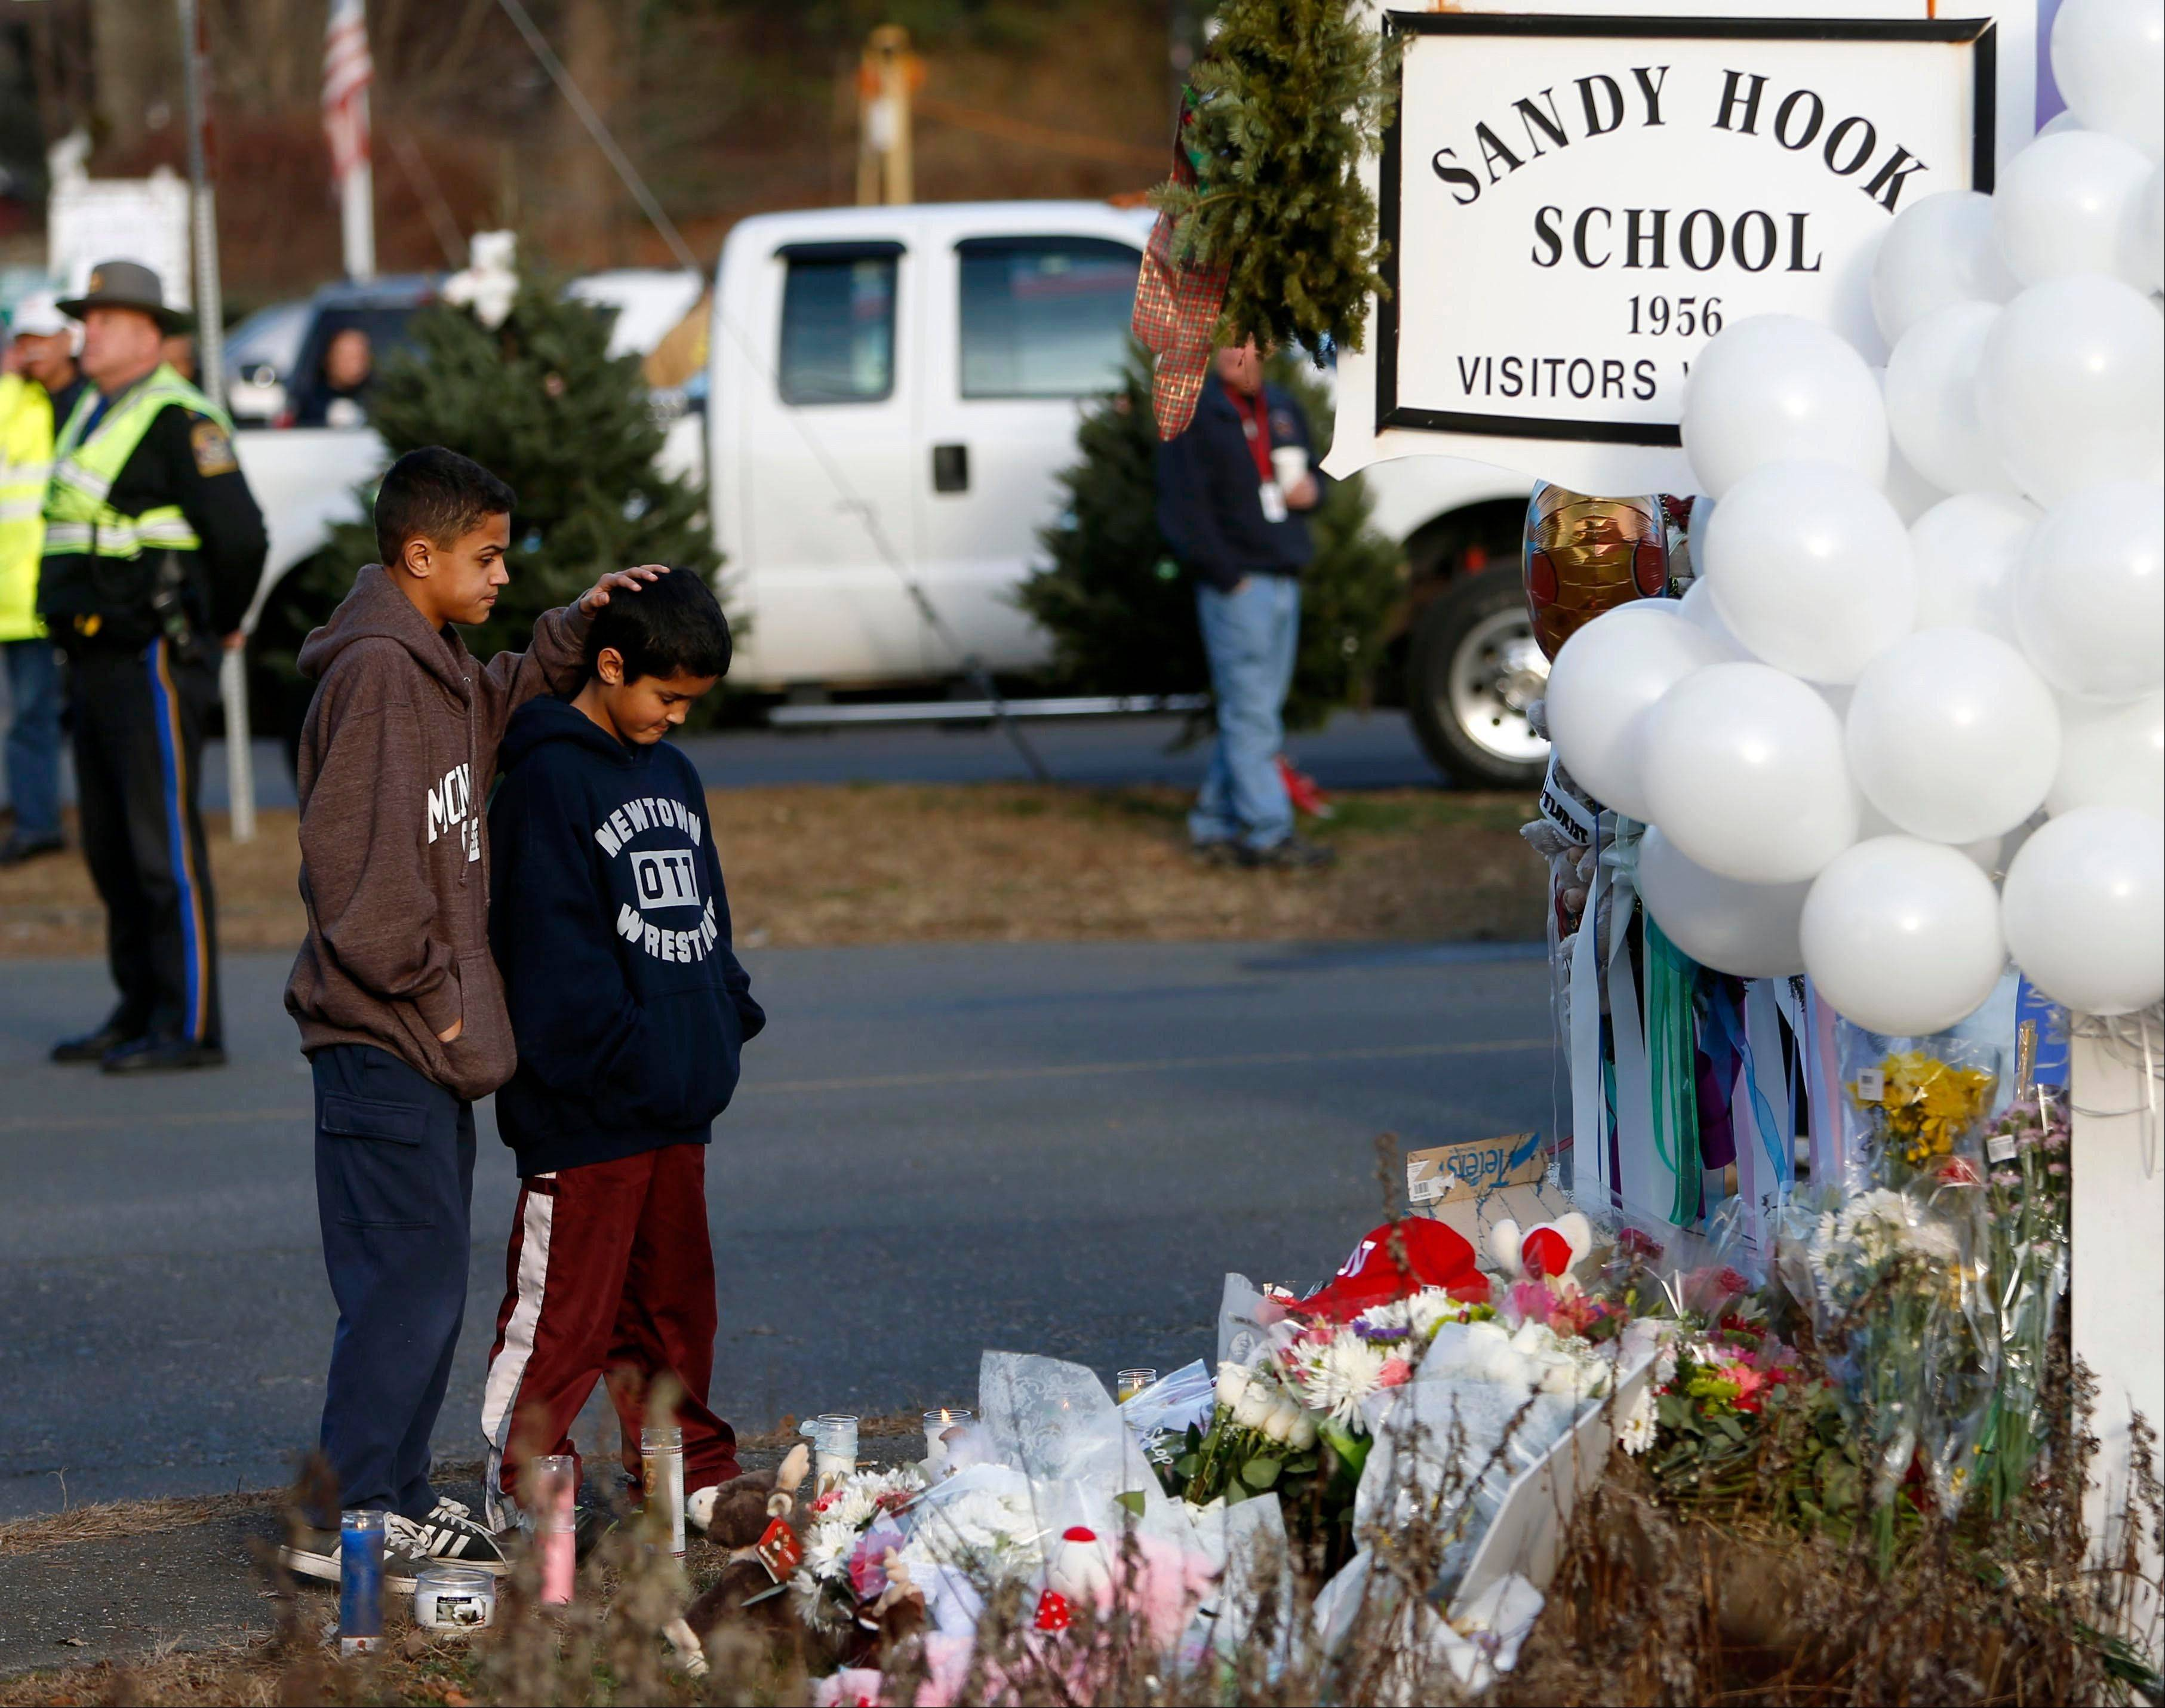 Schools around US increase security after massacre